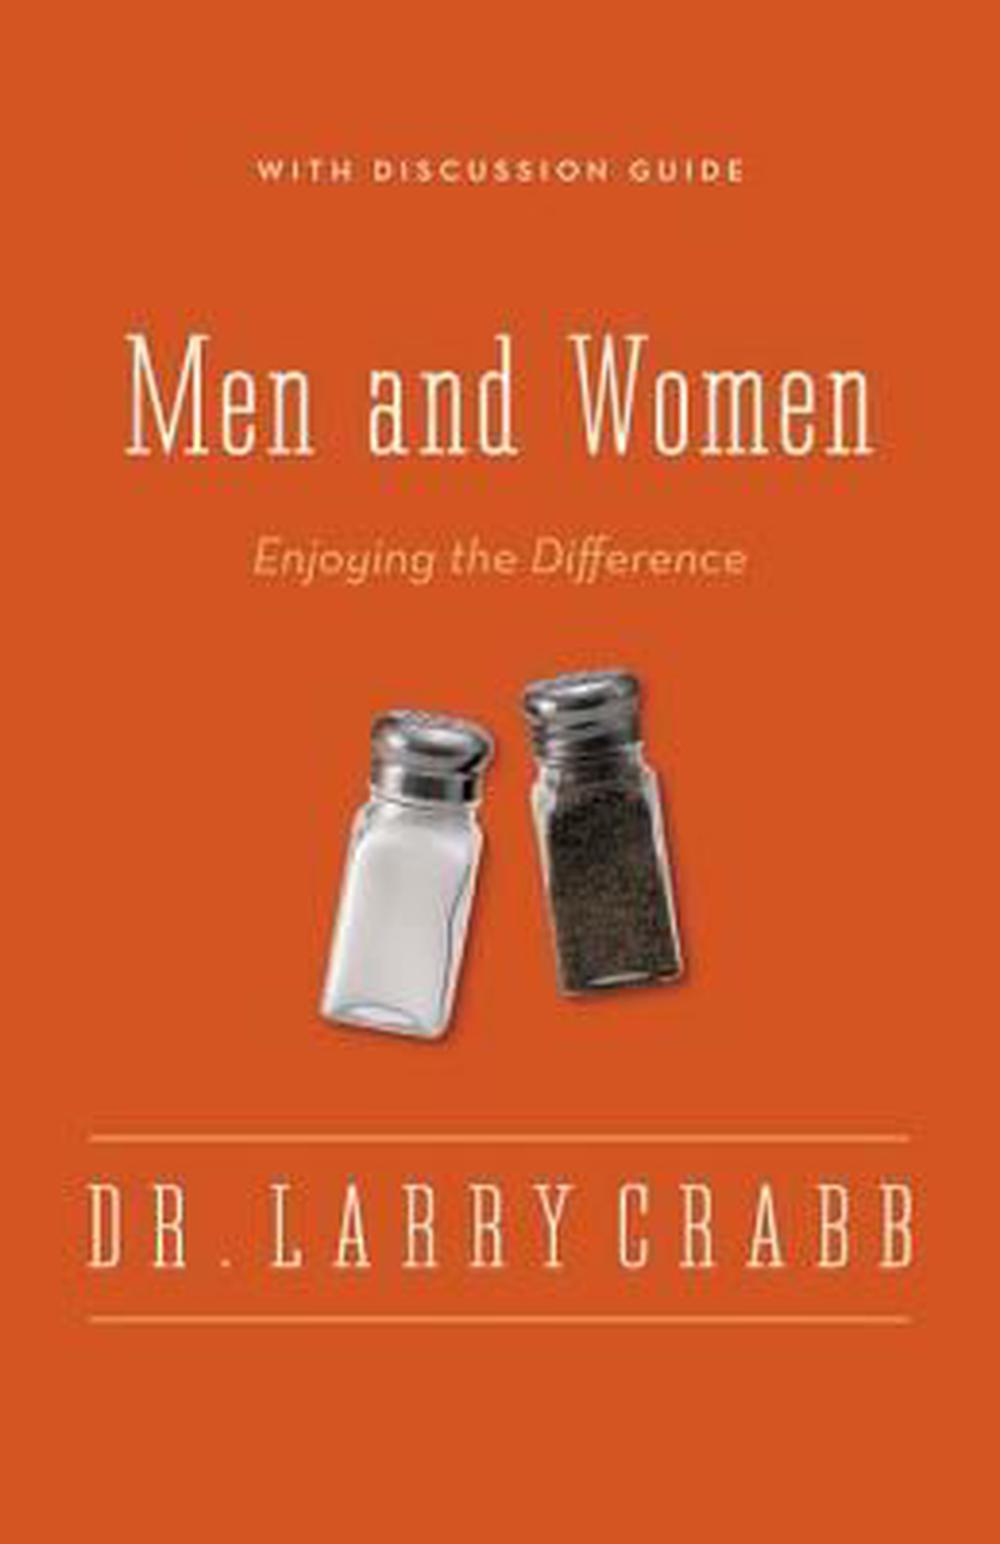 Men and Women by Larry Crabb, ISBN: 9780310336884